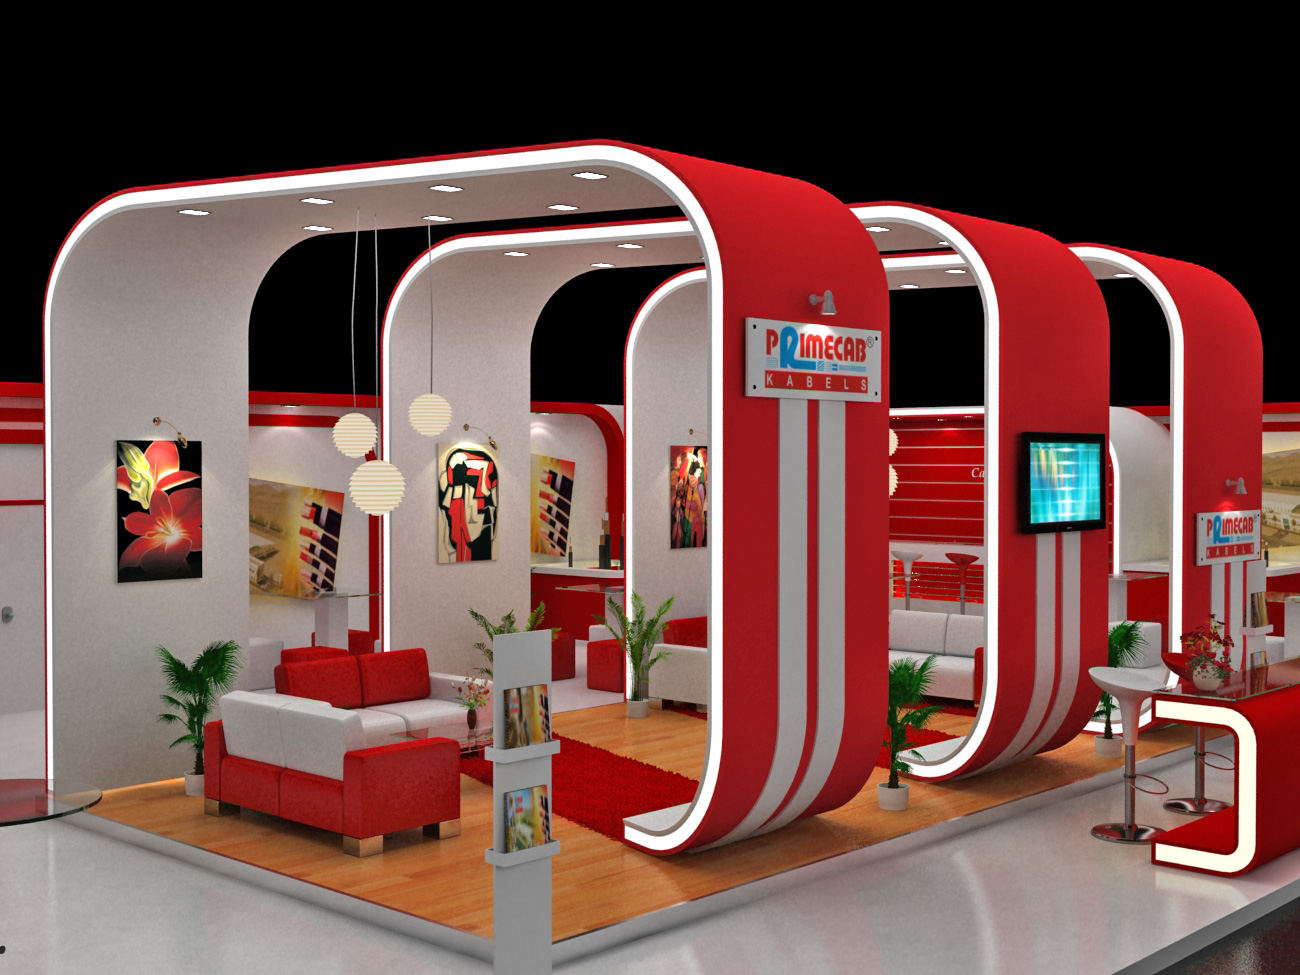 Exhibition Stall Designer : Exhibition stall designs by dnyansagar sapkale at coroflot